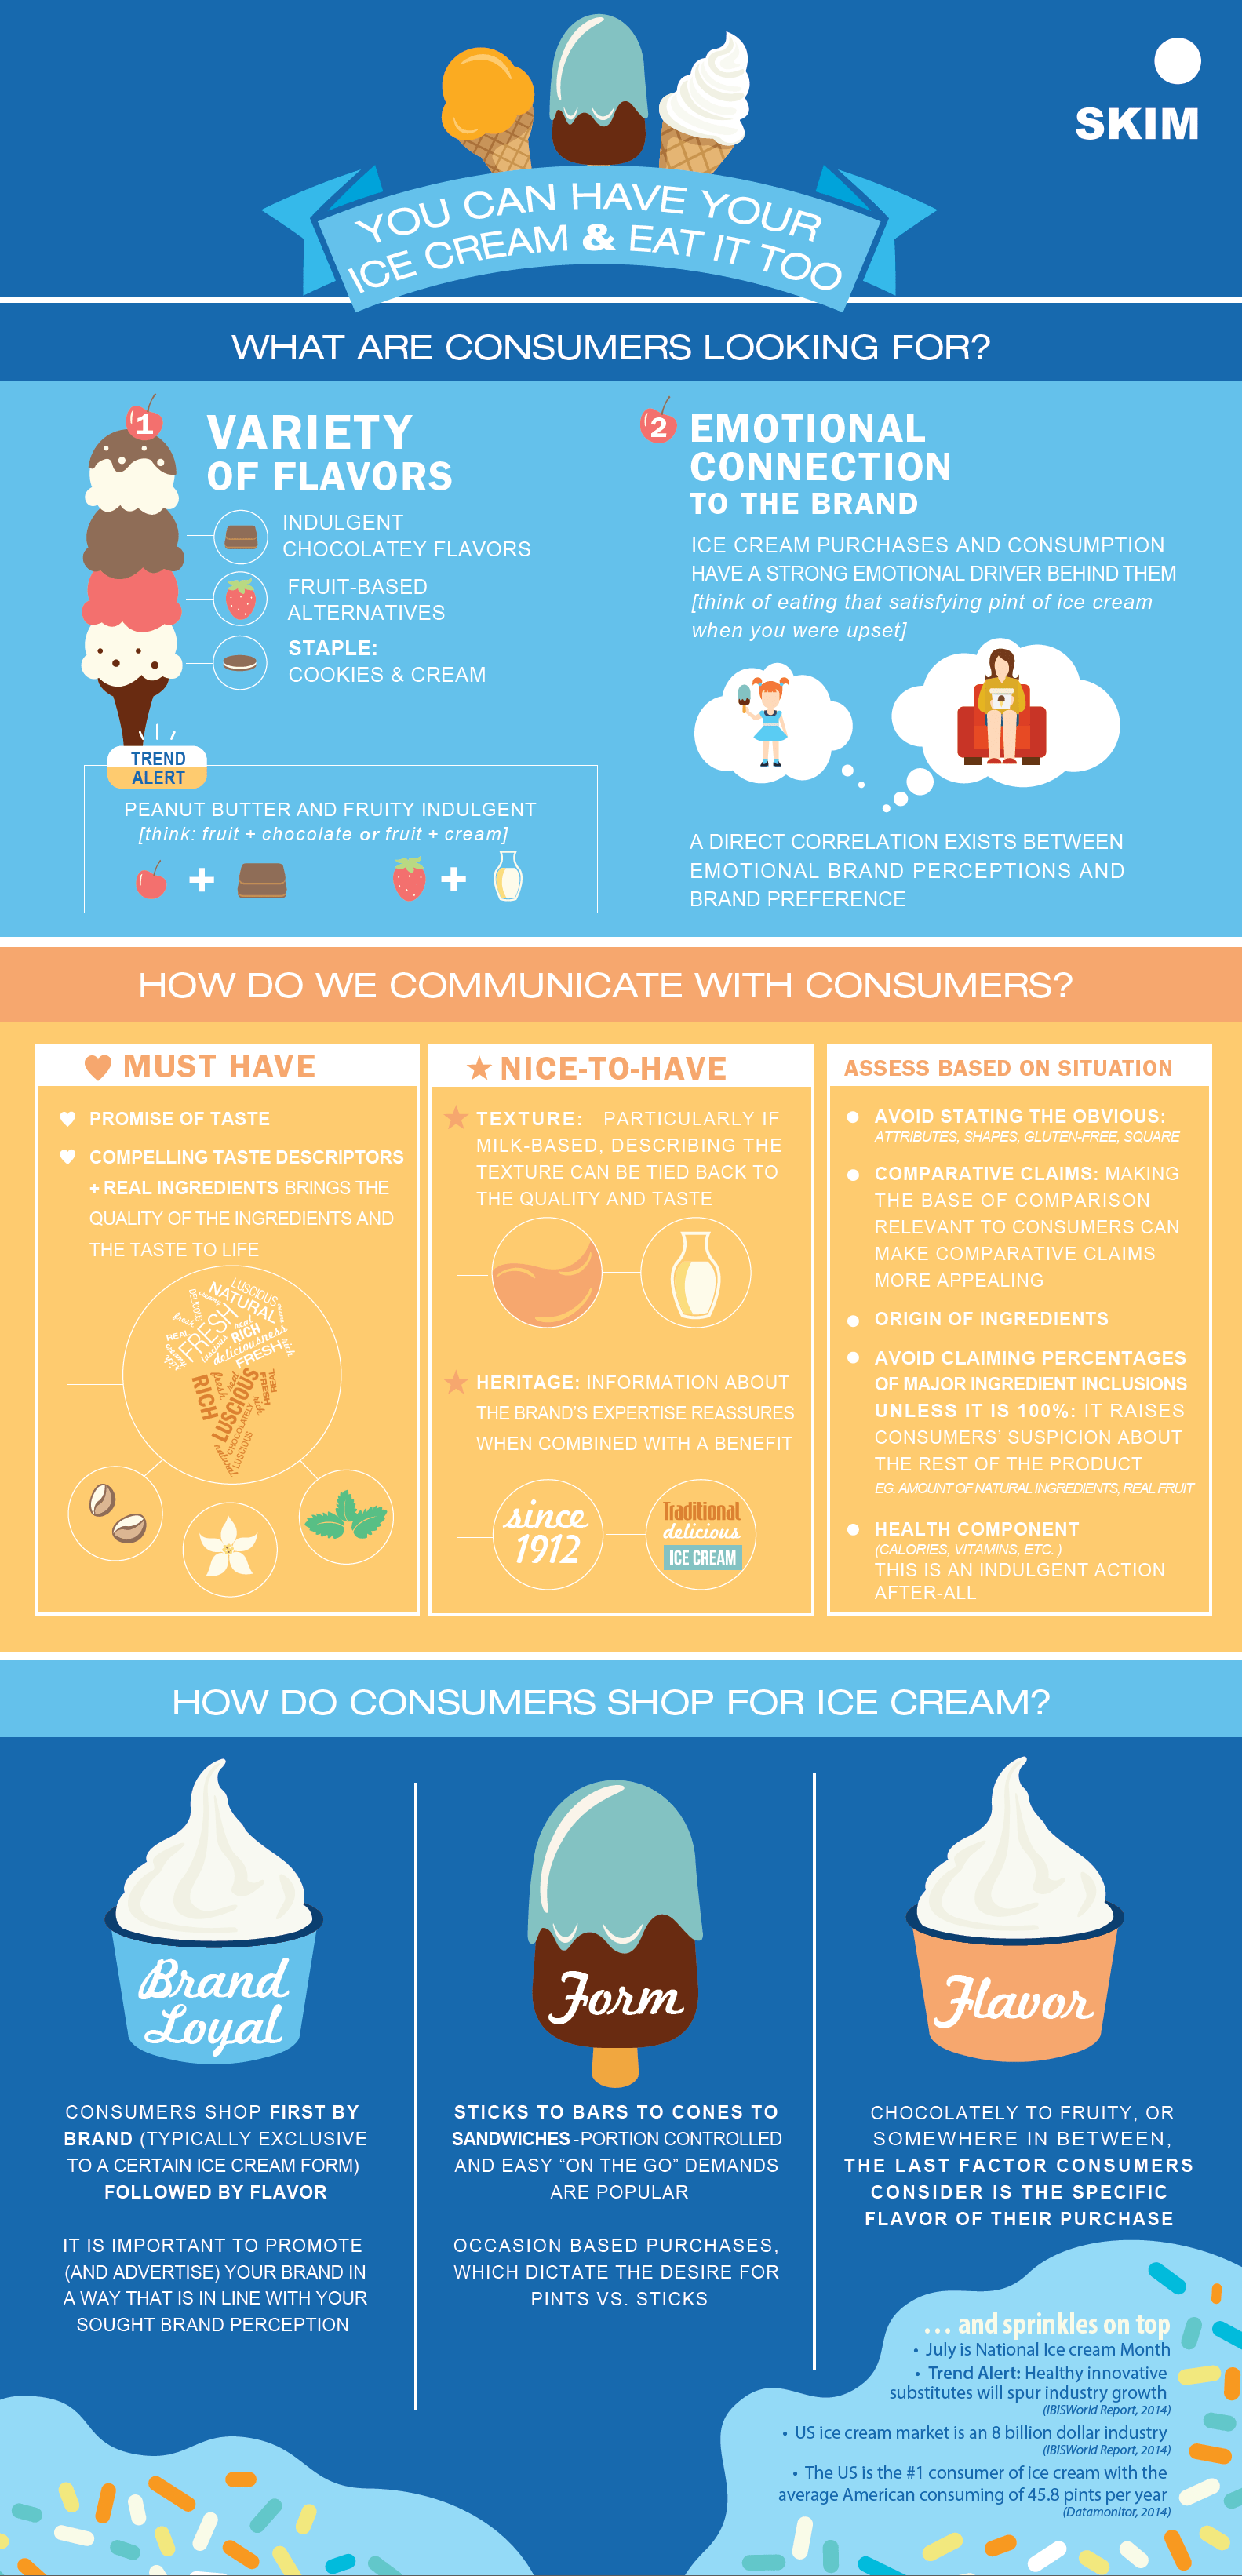 ice cream marketing messaging infographic SKIM